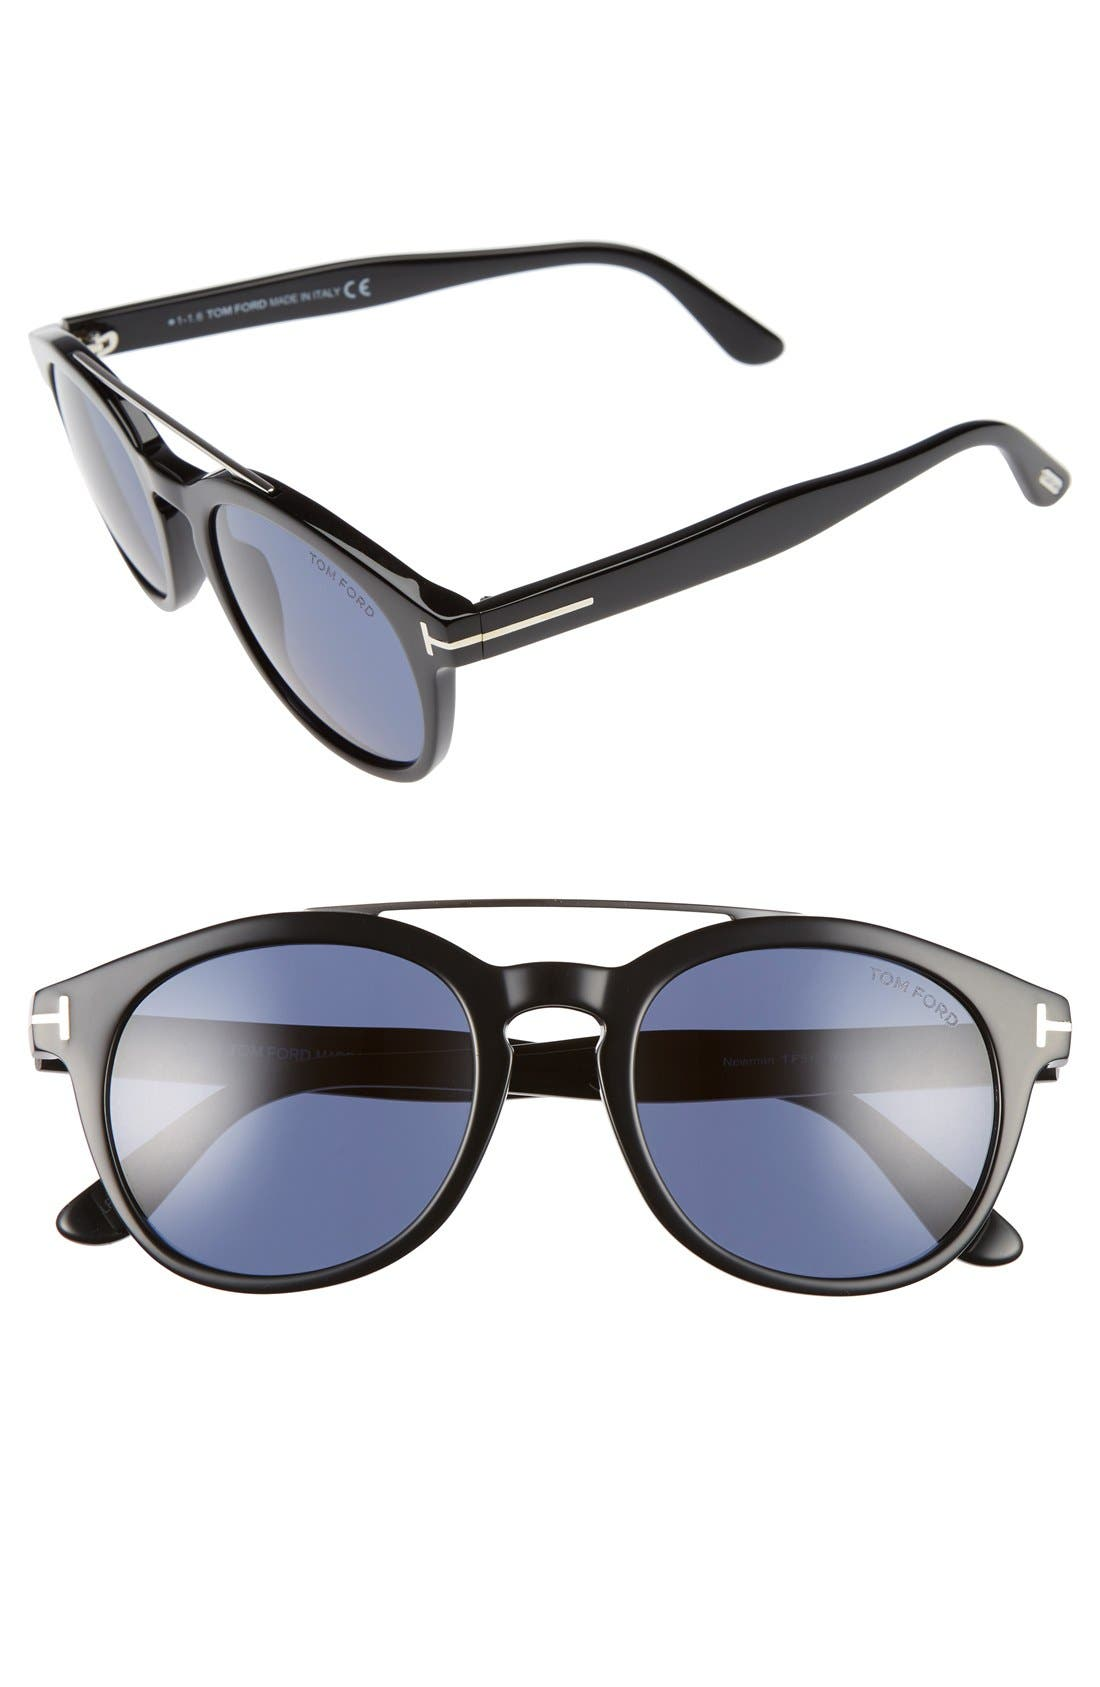 Newman 53mm Sunglasses,                         Main,                         color, Black/ Rhodium/ Blue